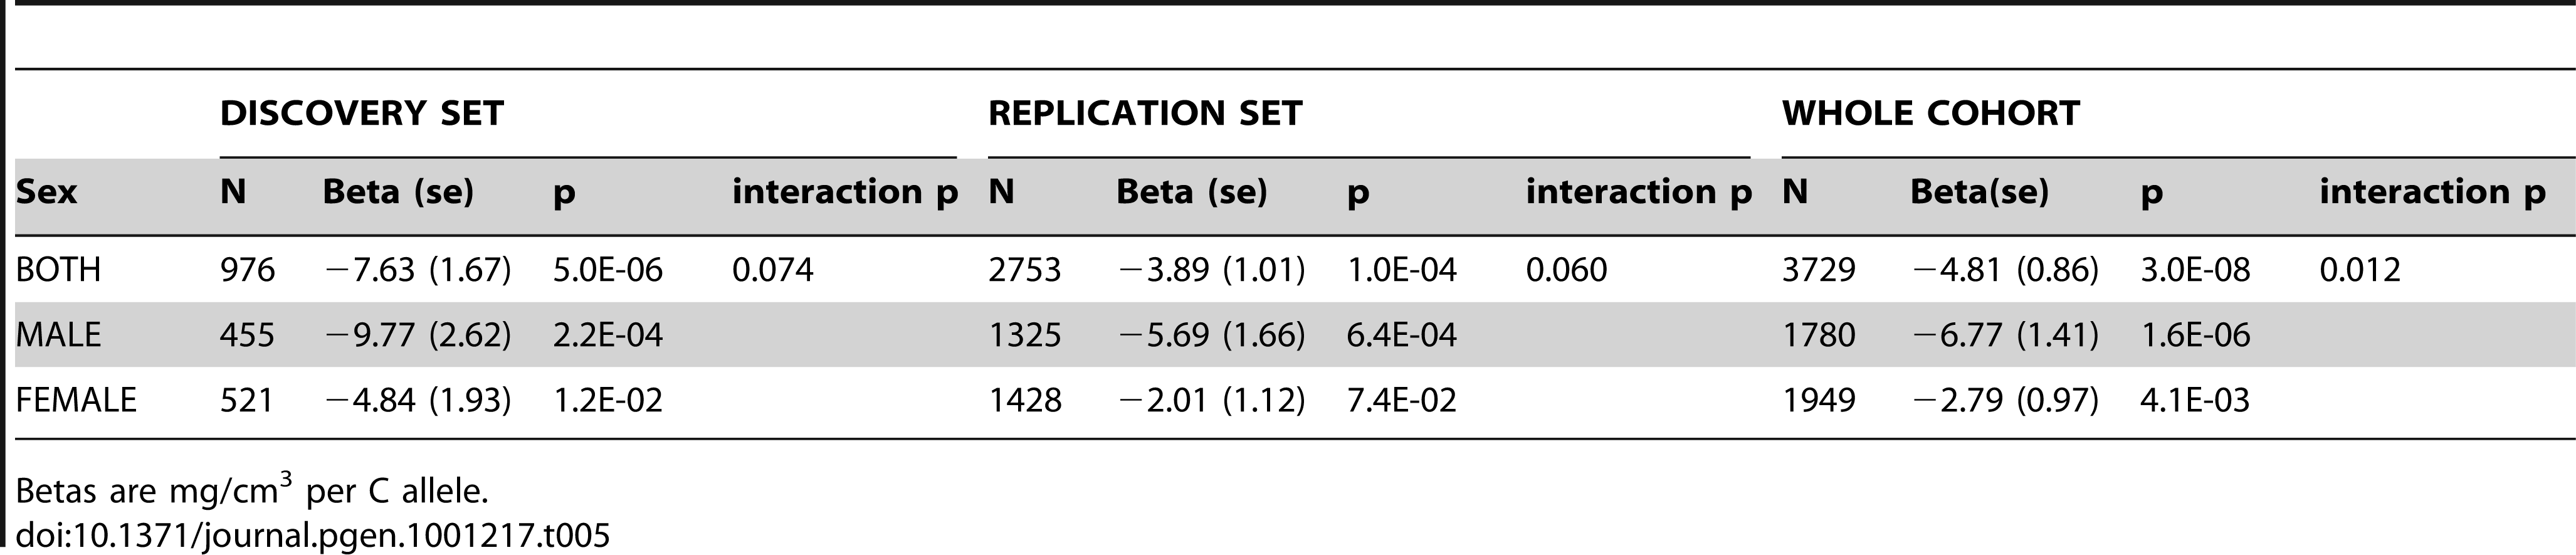 rs1021188 associations with BMD<sub>C</sub> in both ALSPAC datasets stratified by sex.